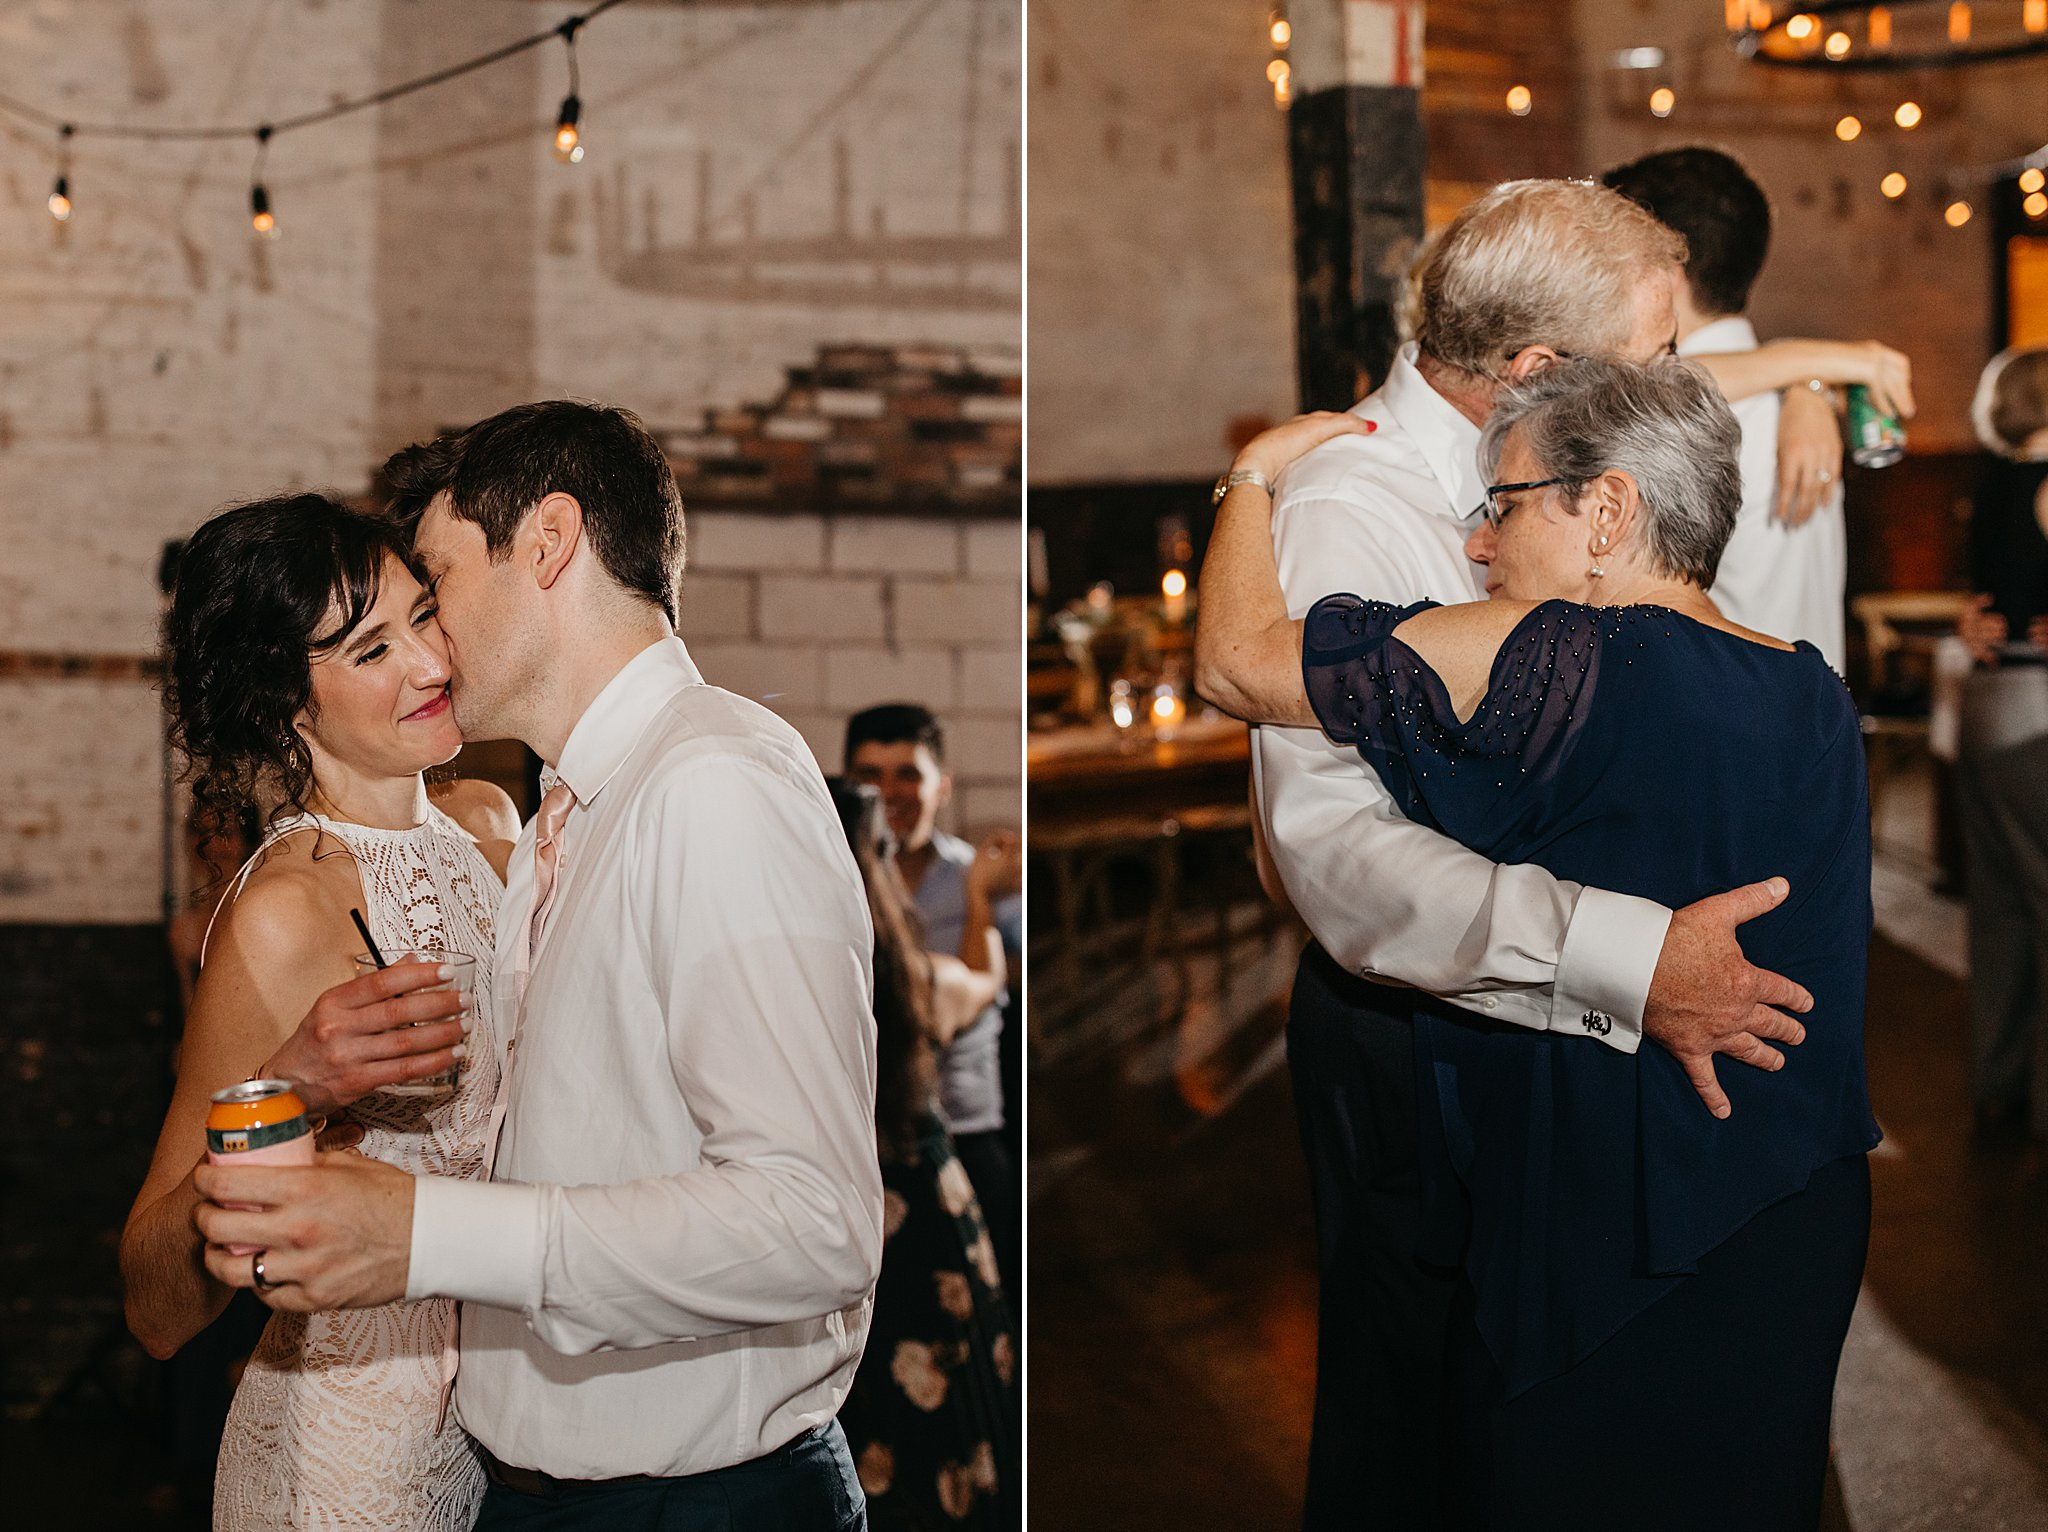 Wilderlove Co_Wedding Photographer_Industrial Wedding_Jewish Wedding_Dallas Texas Wedding_Brake & Clutch Warehouse_North Texas Photographer_0097.jpg